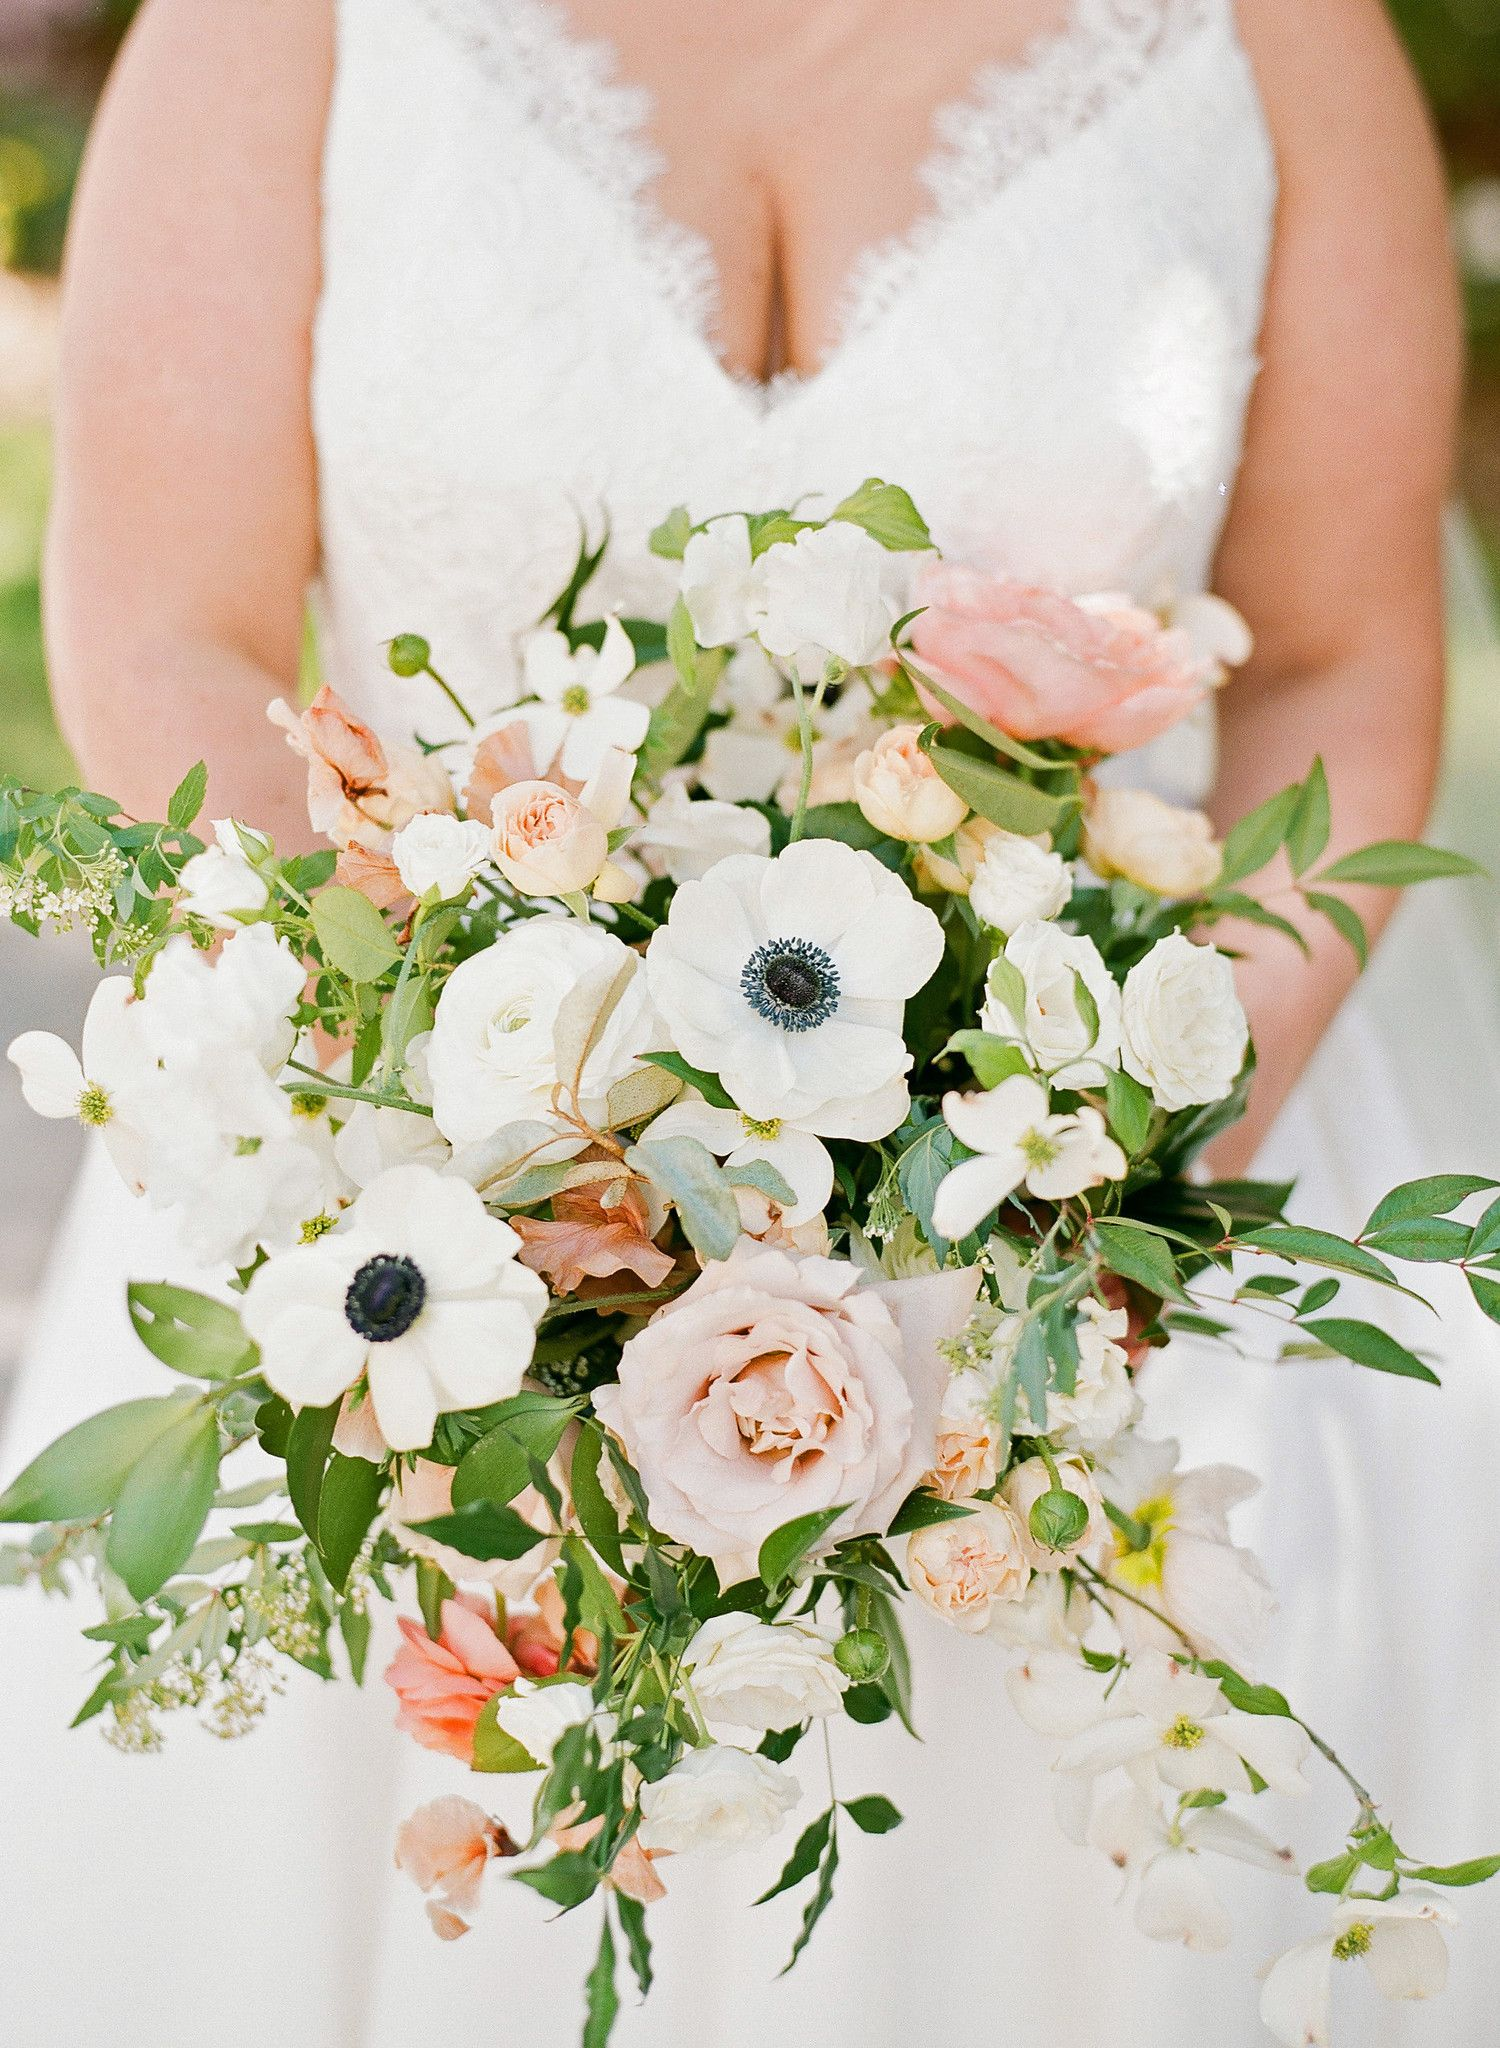 52 ideas for your spring wedding bouquet orange pink ranunculus this bride carried a bountiful bouquet of anemones roses dogwood sweet peas izmirmasajfo